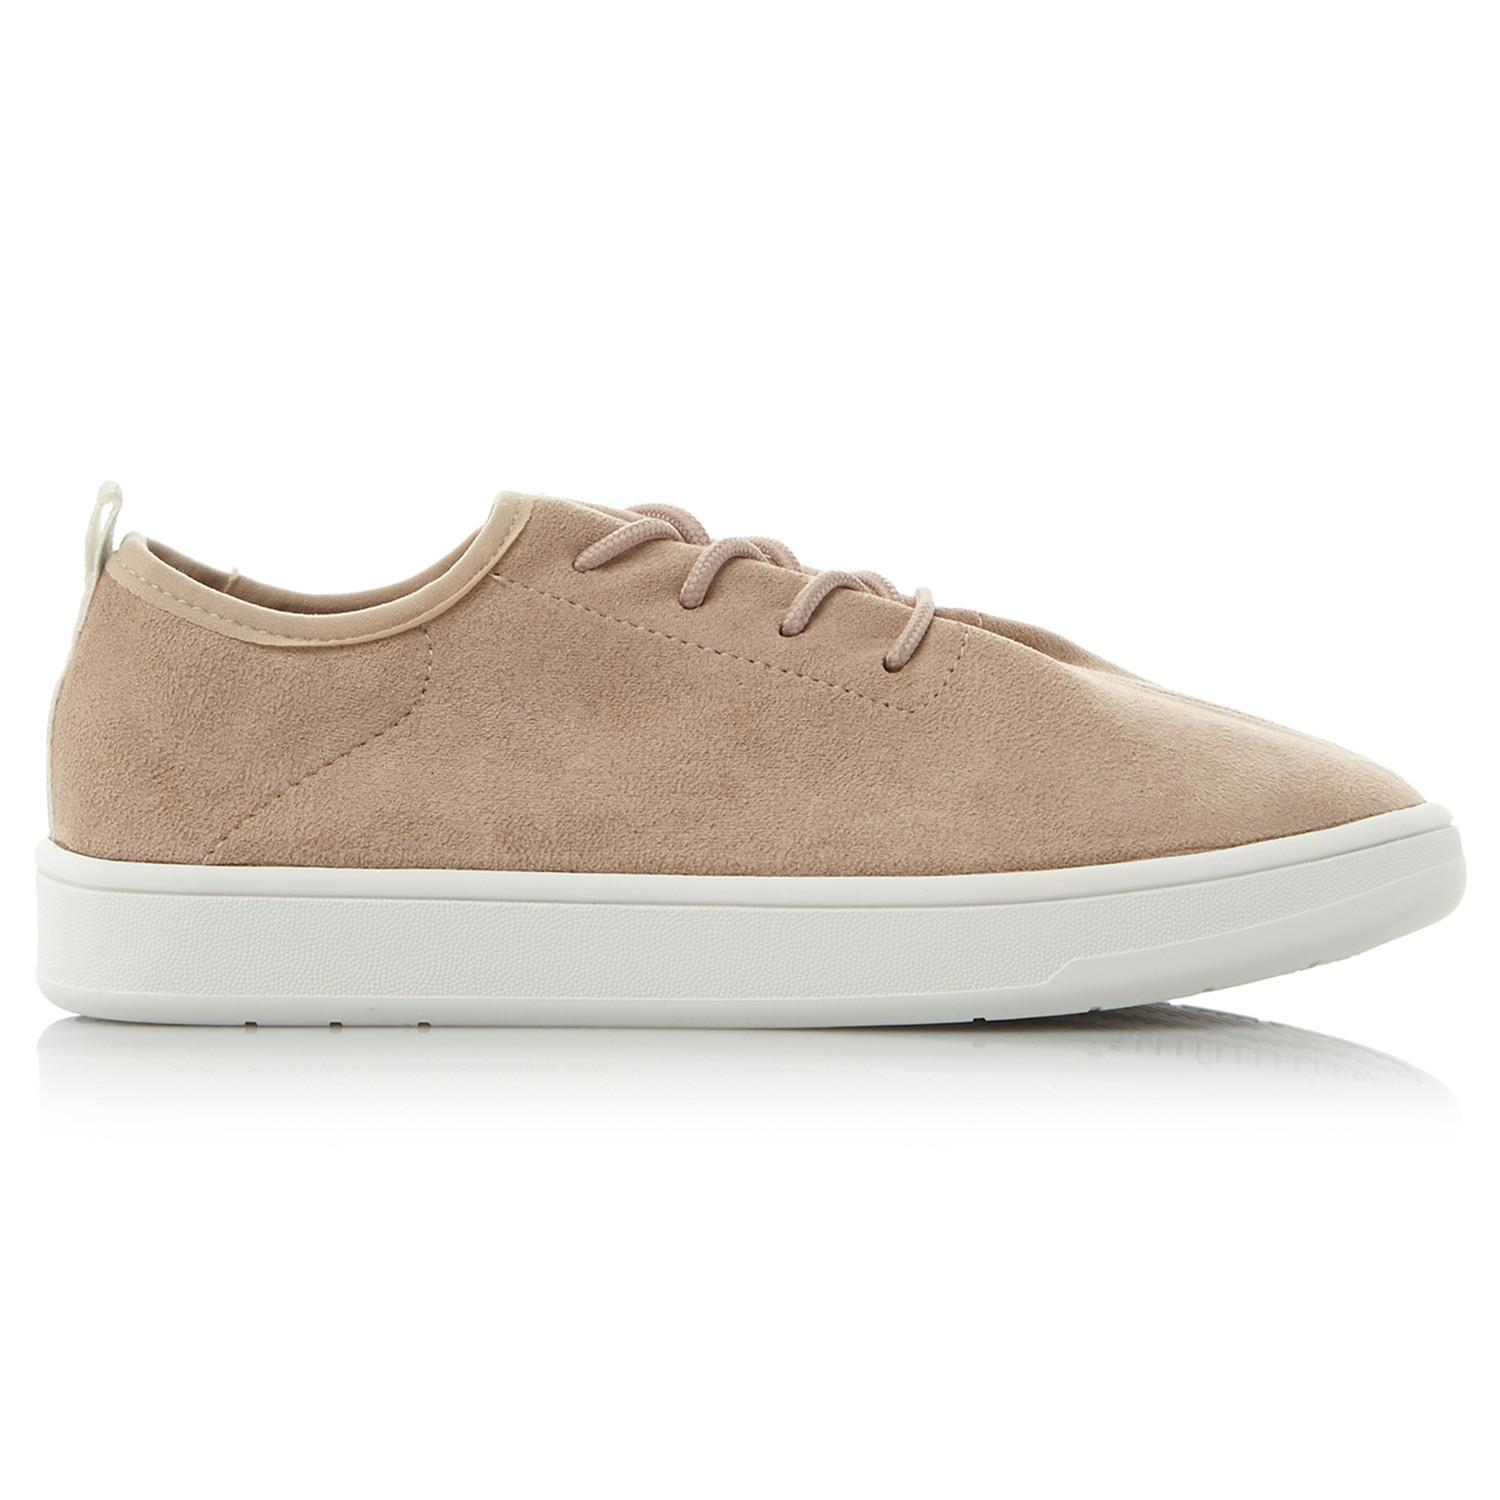 Steve Madden Denim Elexa Lace Up Trainers in Nude (Natural)